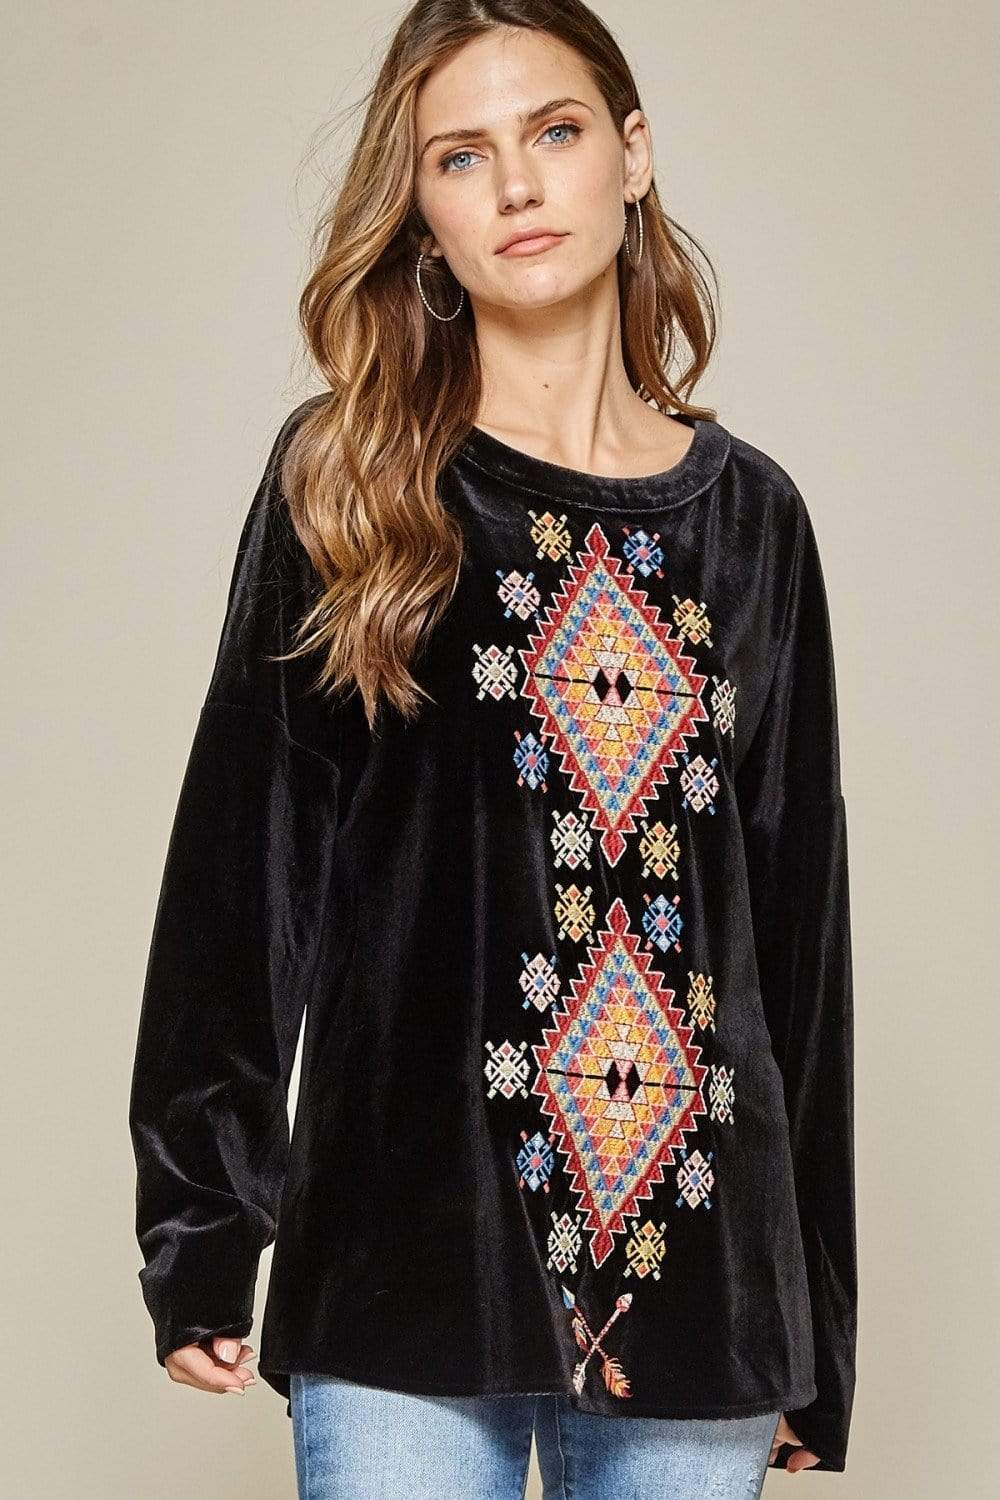 RESTOCKED Velvet Top With Embroidery Design